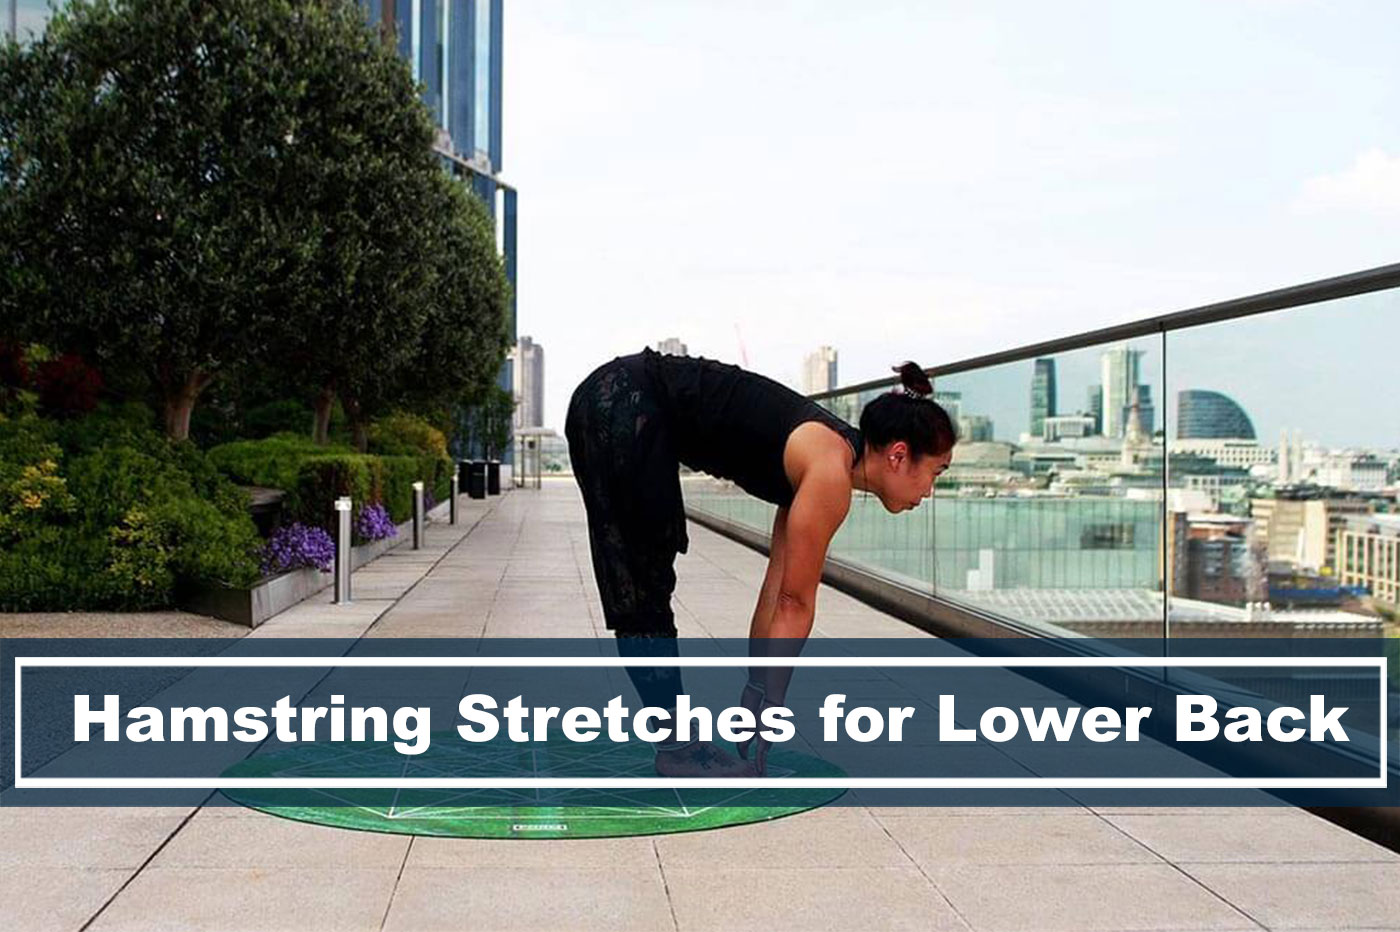 Hamstring Stretches Can Help Relieve Lower Back Pain